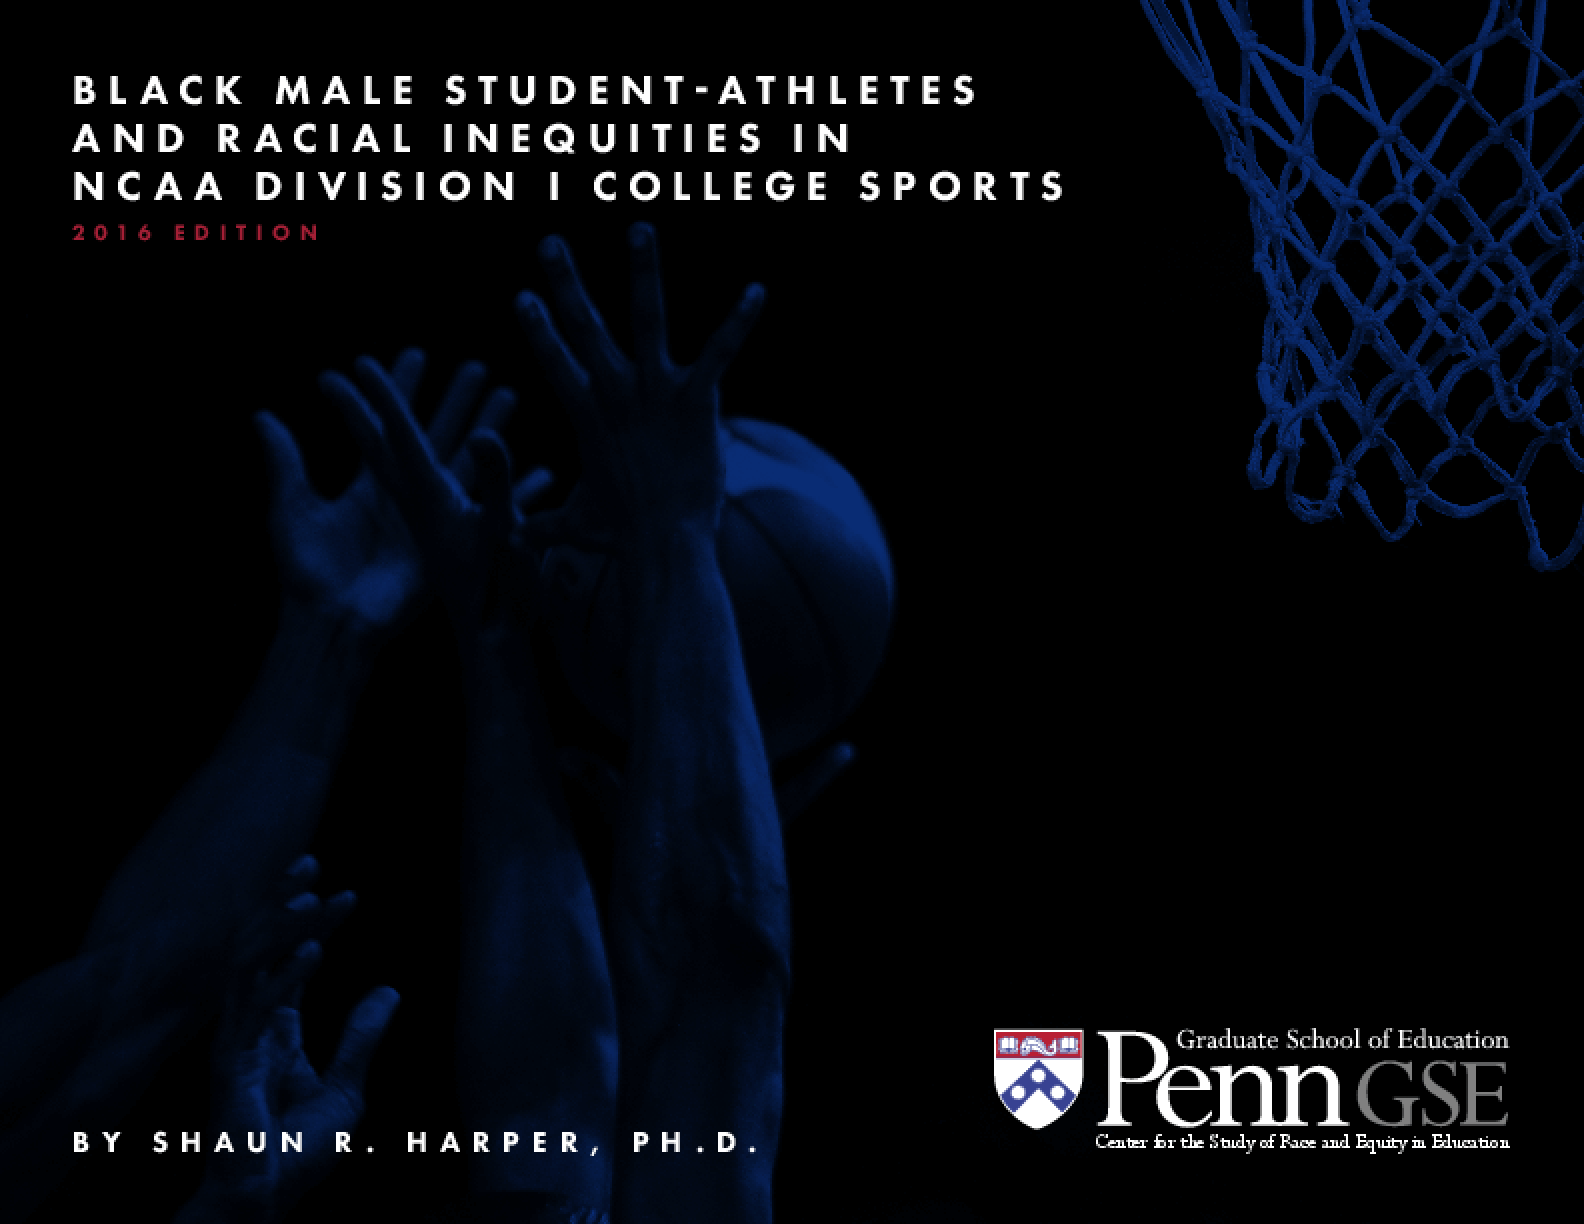 Black Male Student-Athletes and Racial Inequities in NCAA Division I College Sports: 2016 Edition